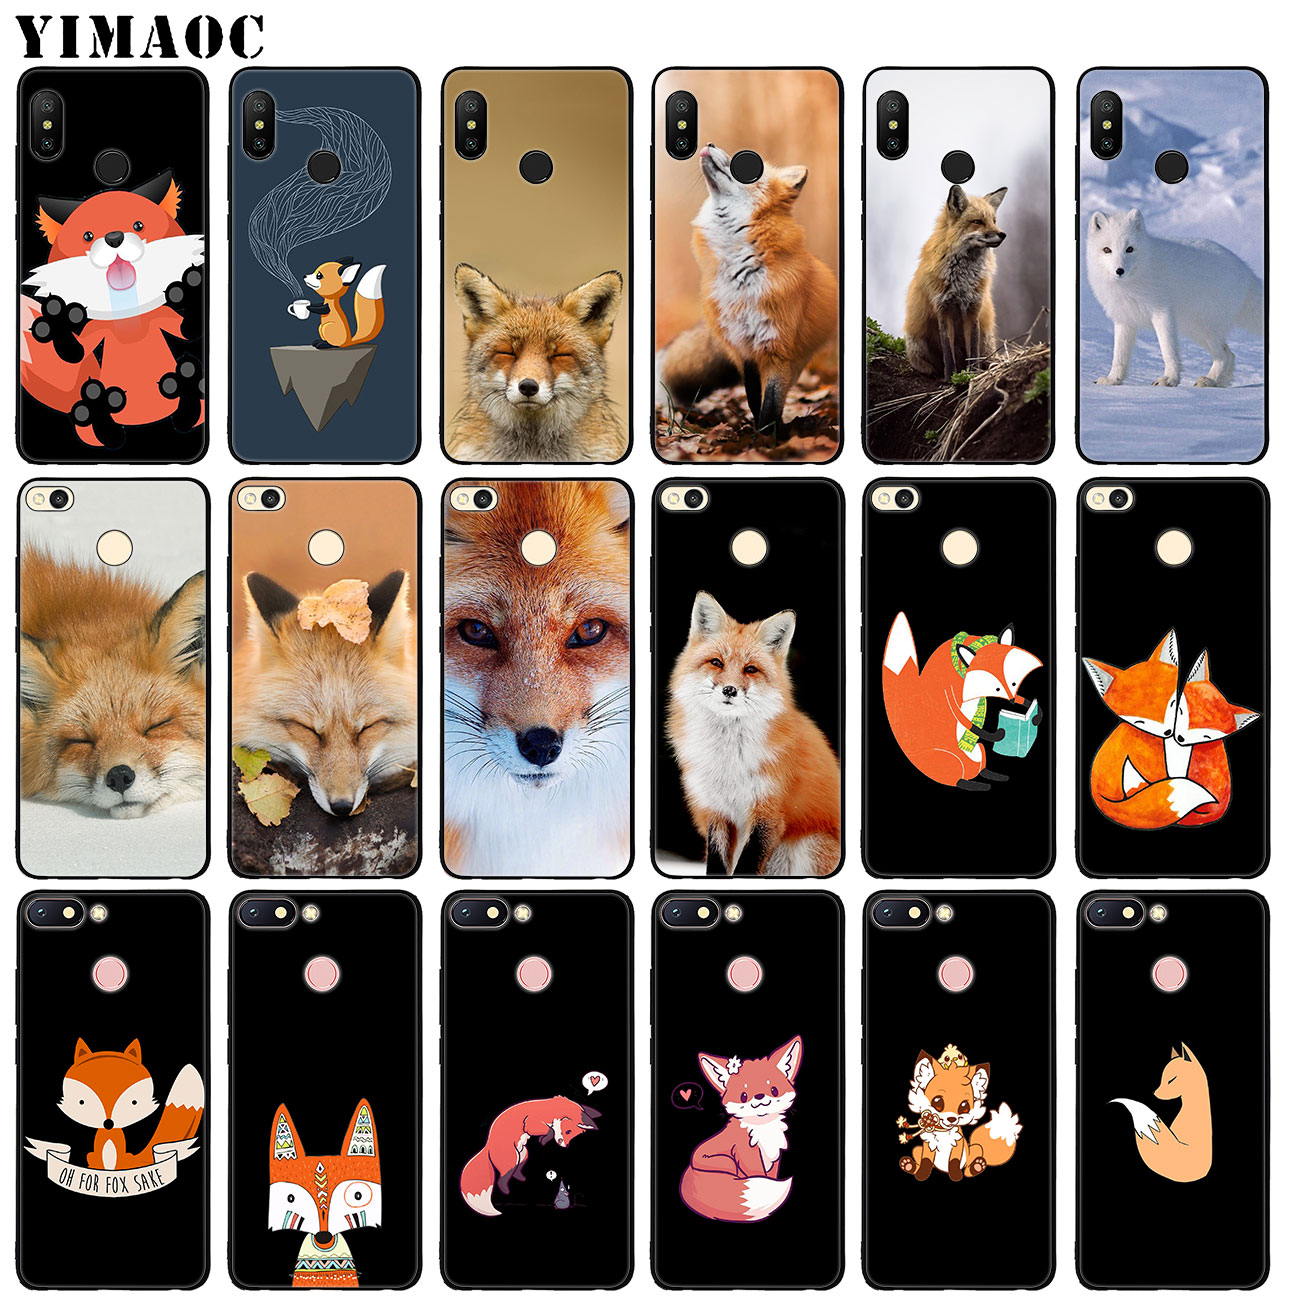 Half-wrapped Case Cat Astronaut Dog Fox Space Moon Universe Foxes Phone Case For Xiaomi Mi 9 8 Se A2 Lite A1 Pocophone F1 5x 5s 6 6x Mix 2s Max 3 Phone Bags & Cases